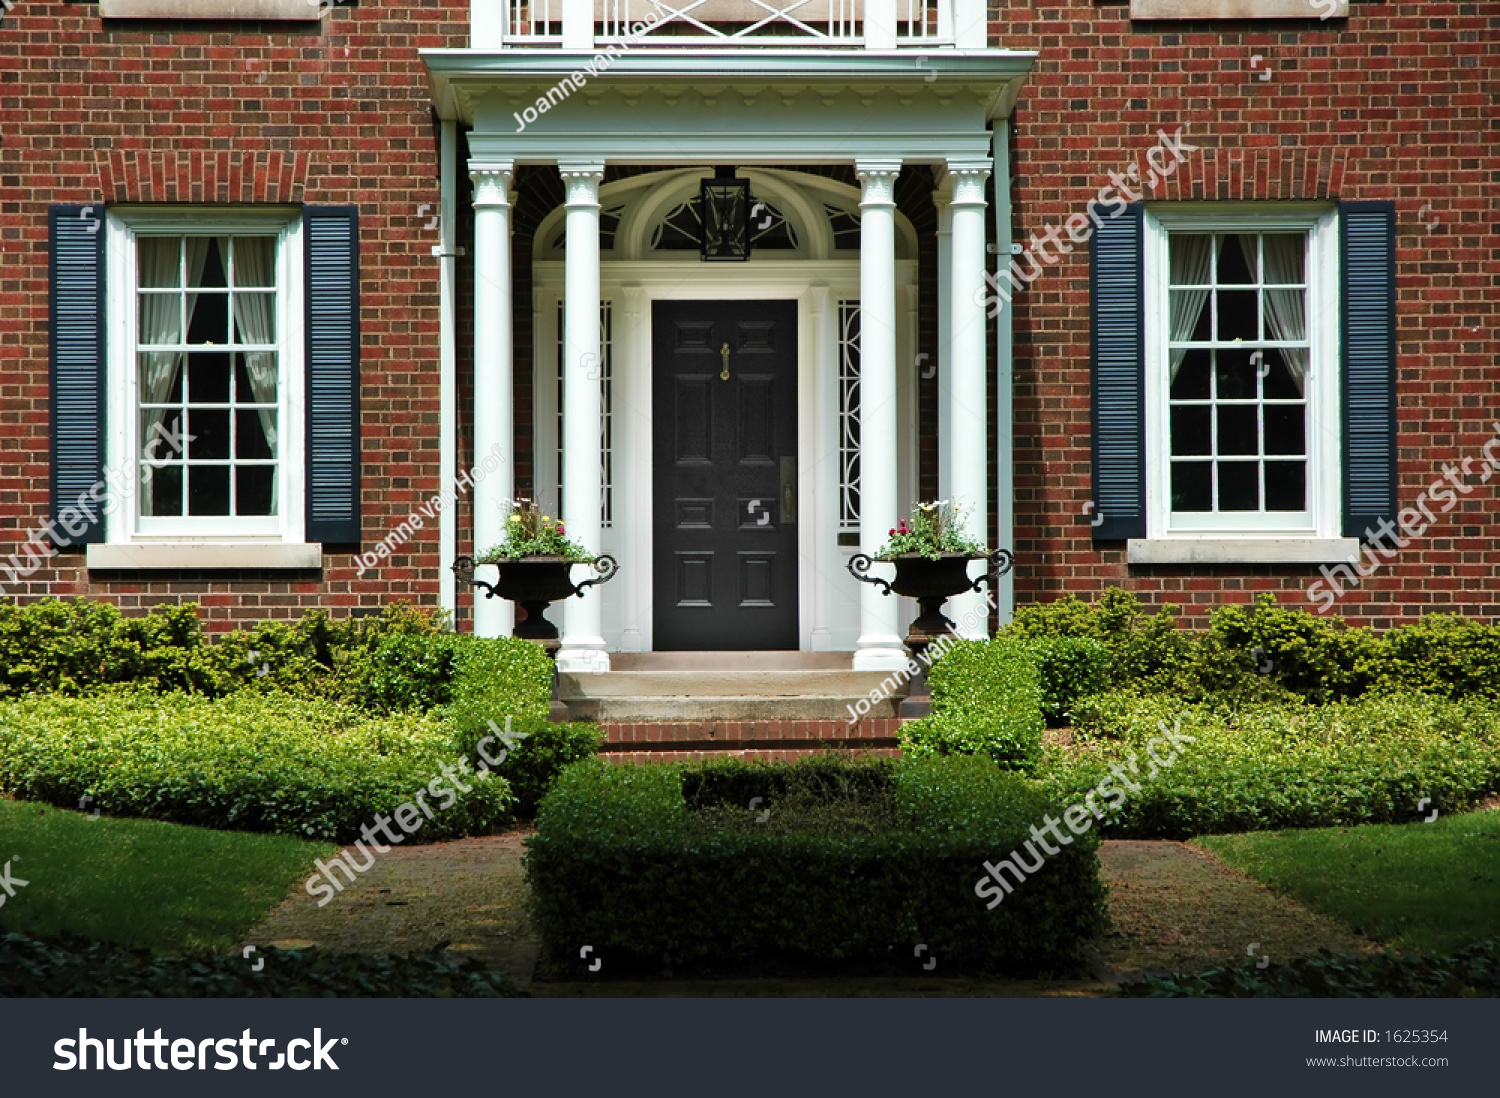 Red front door on brick house - Red Brick House With Black Shutters And Green Shrubs With Front Door Flanked By Pillars And